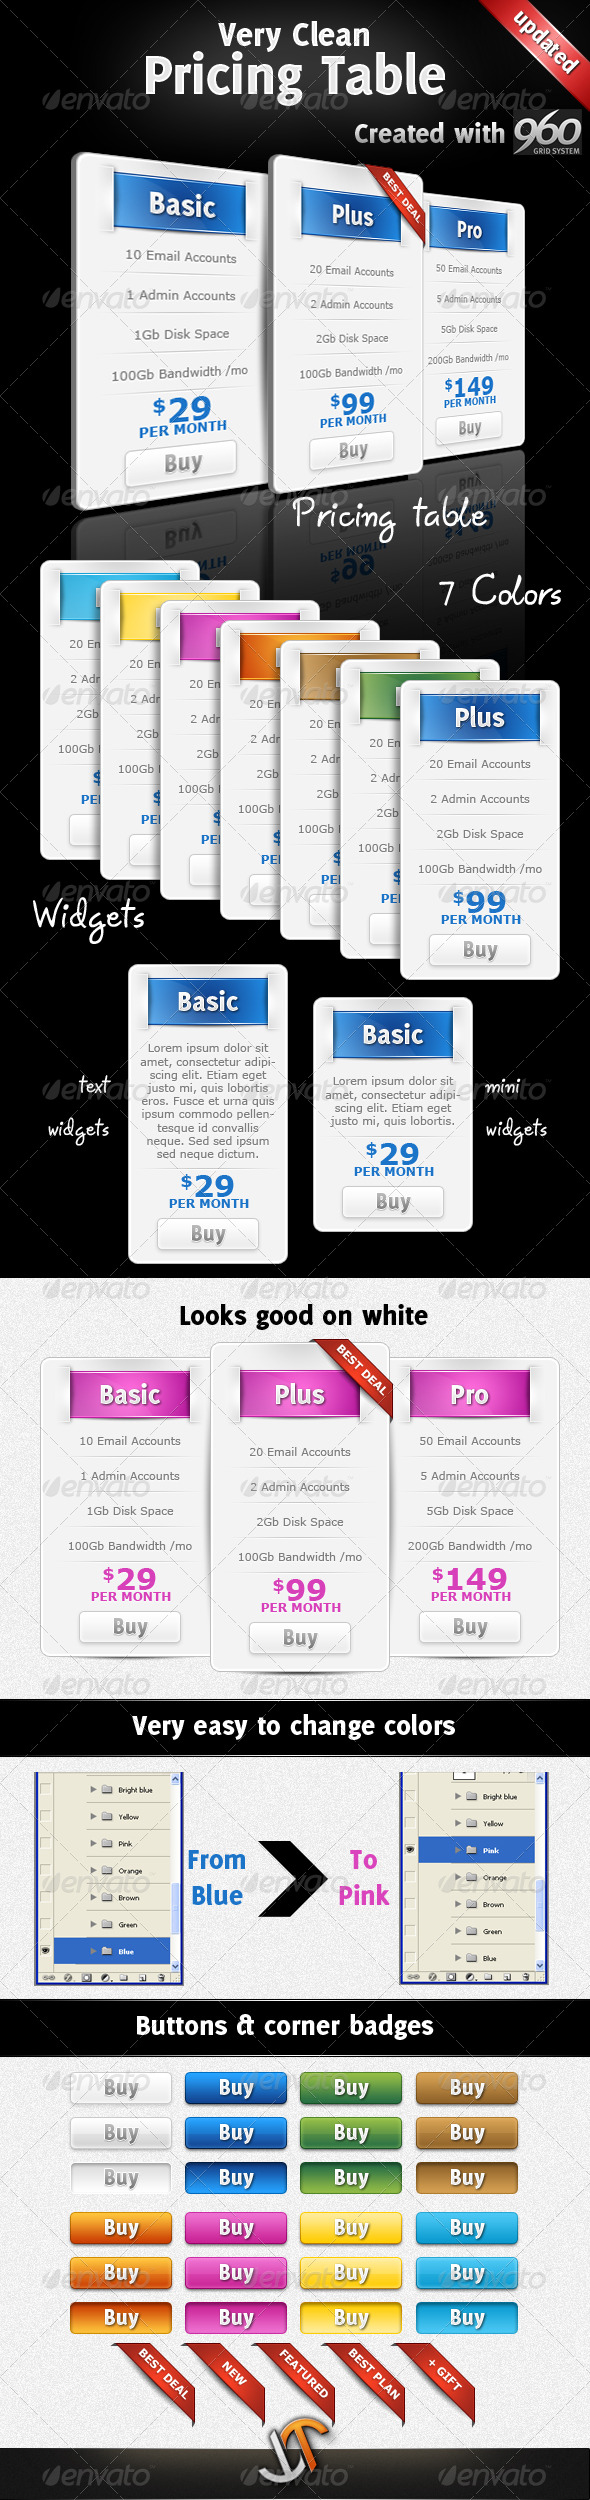 Very Clean Pricing Table with Widgets and 7 Colors - Web Elements